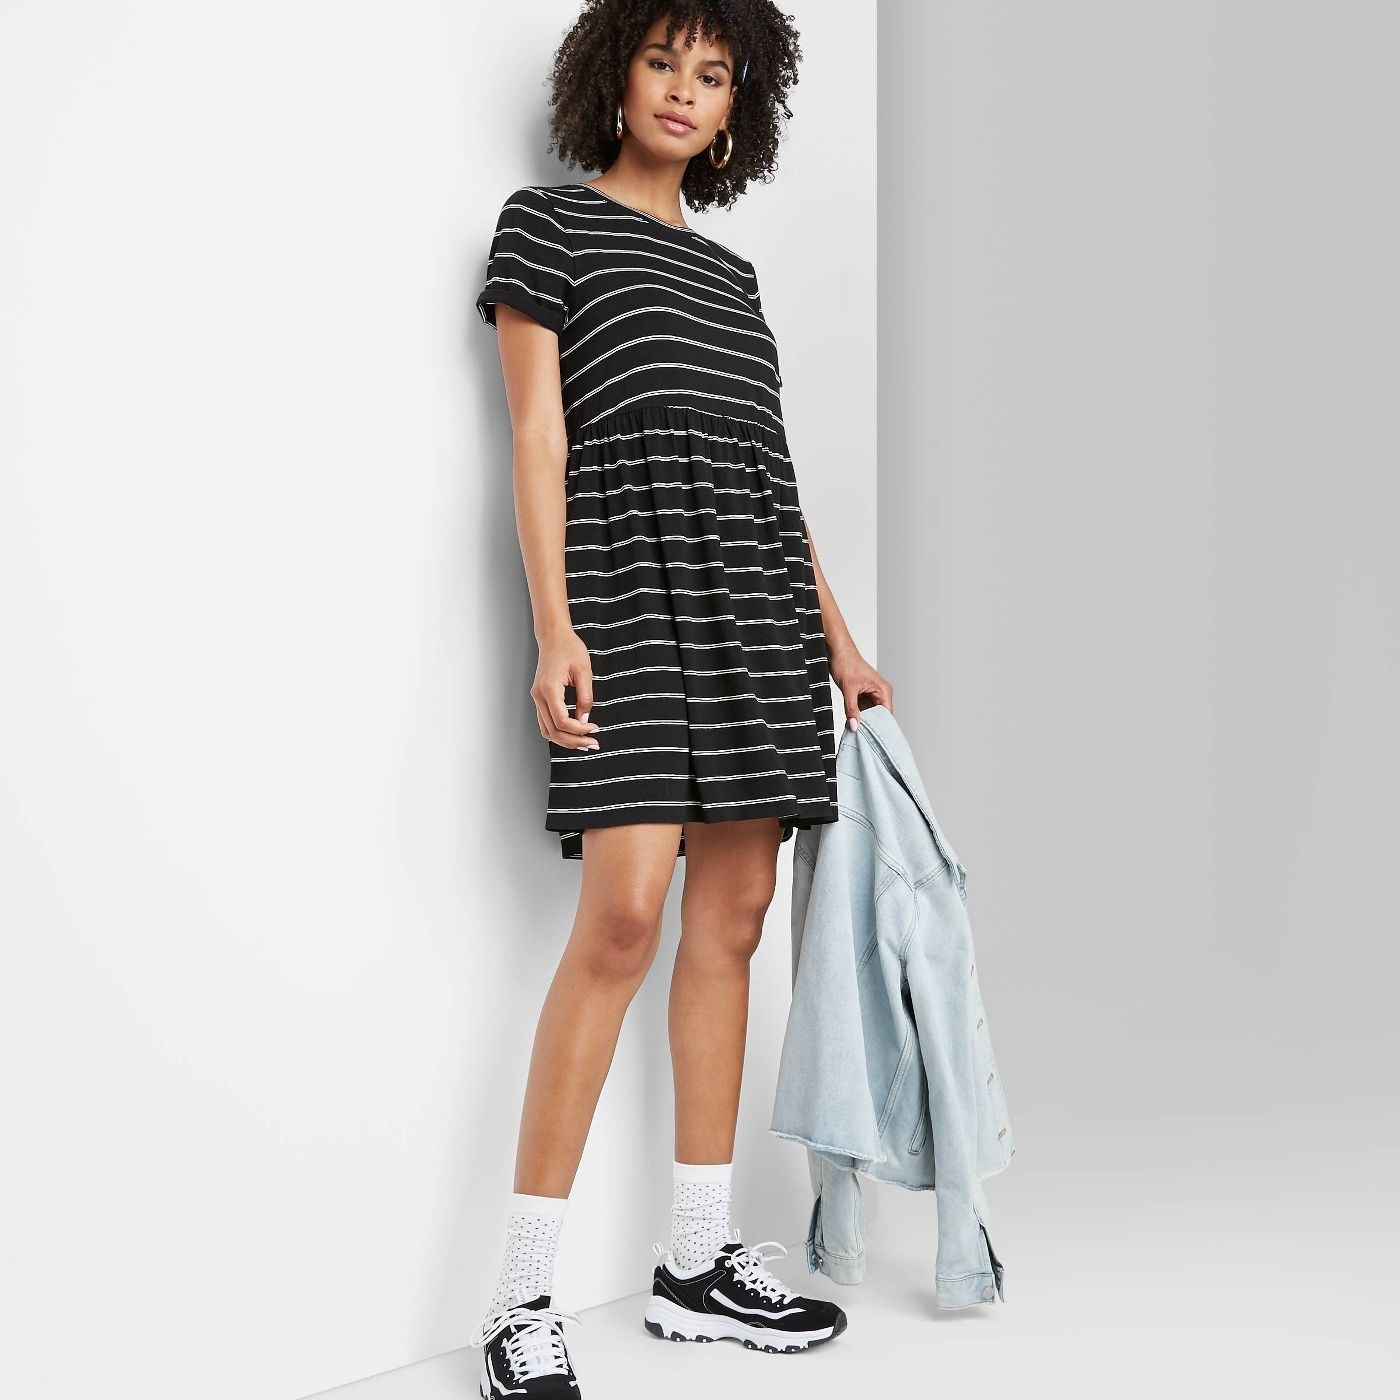 A model in a short-sleeved black and white striped dress that falls above the knee